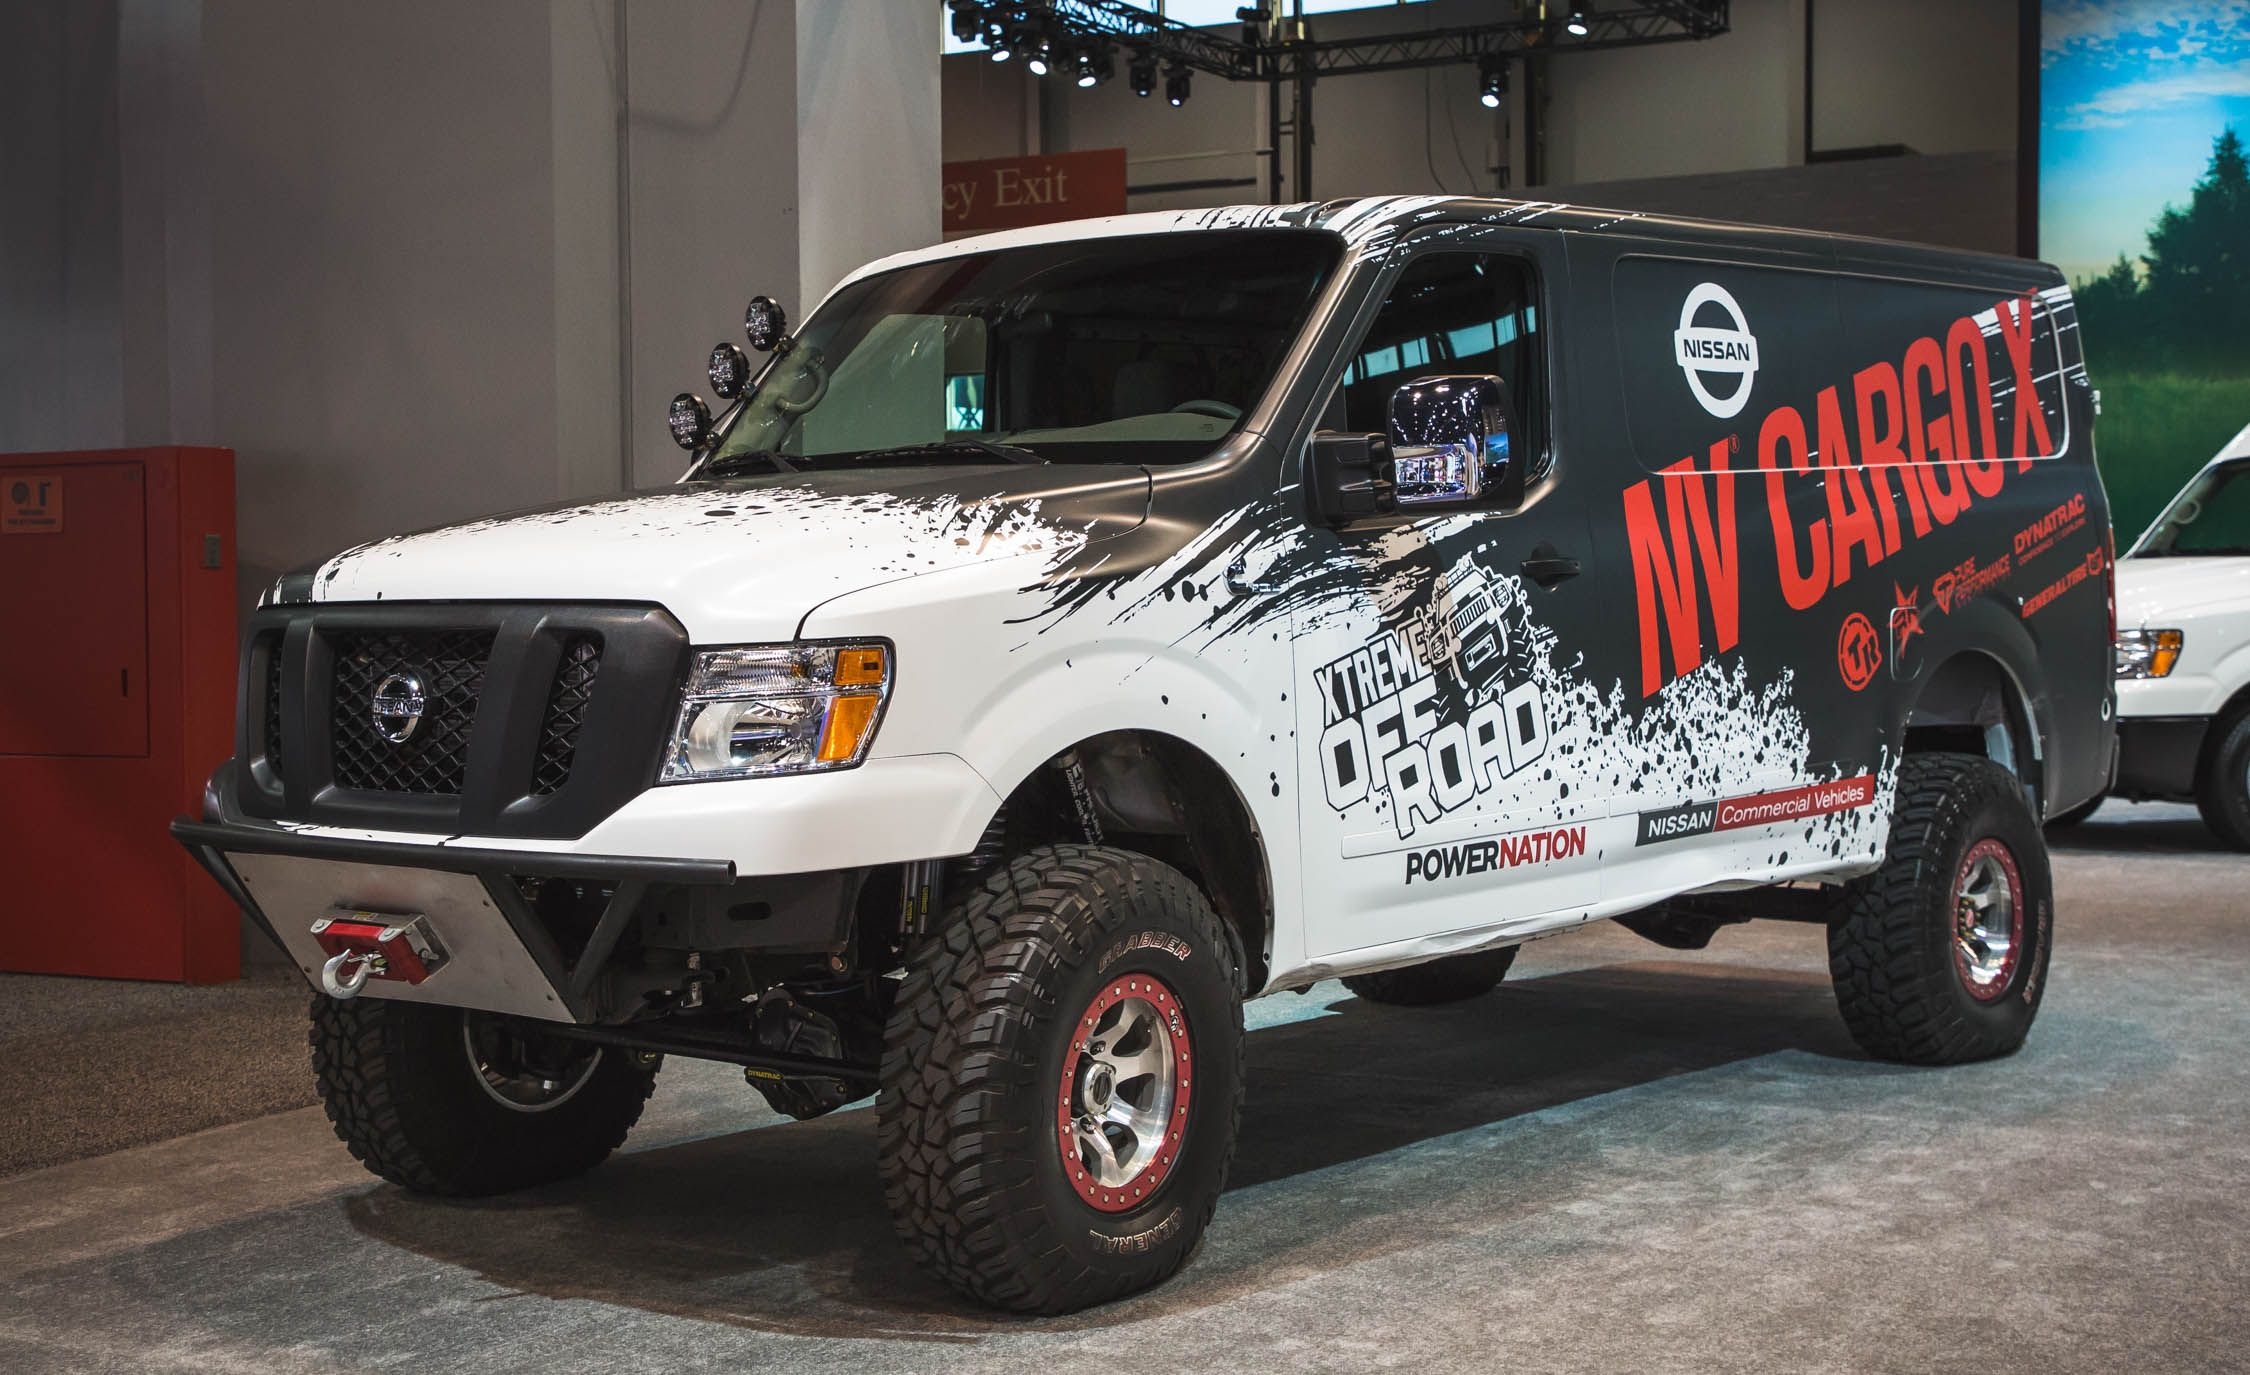 Nissan s lifted turbo diesel 4 4 van could deliver packages anywhere